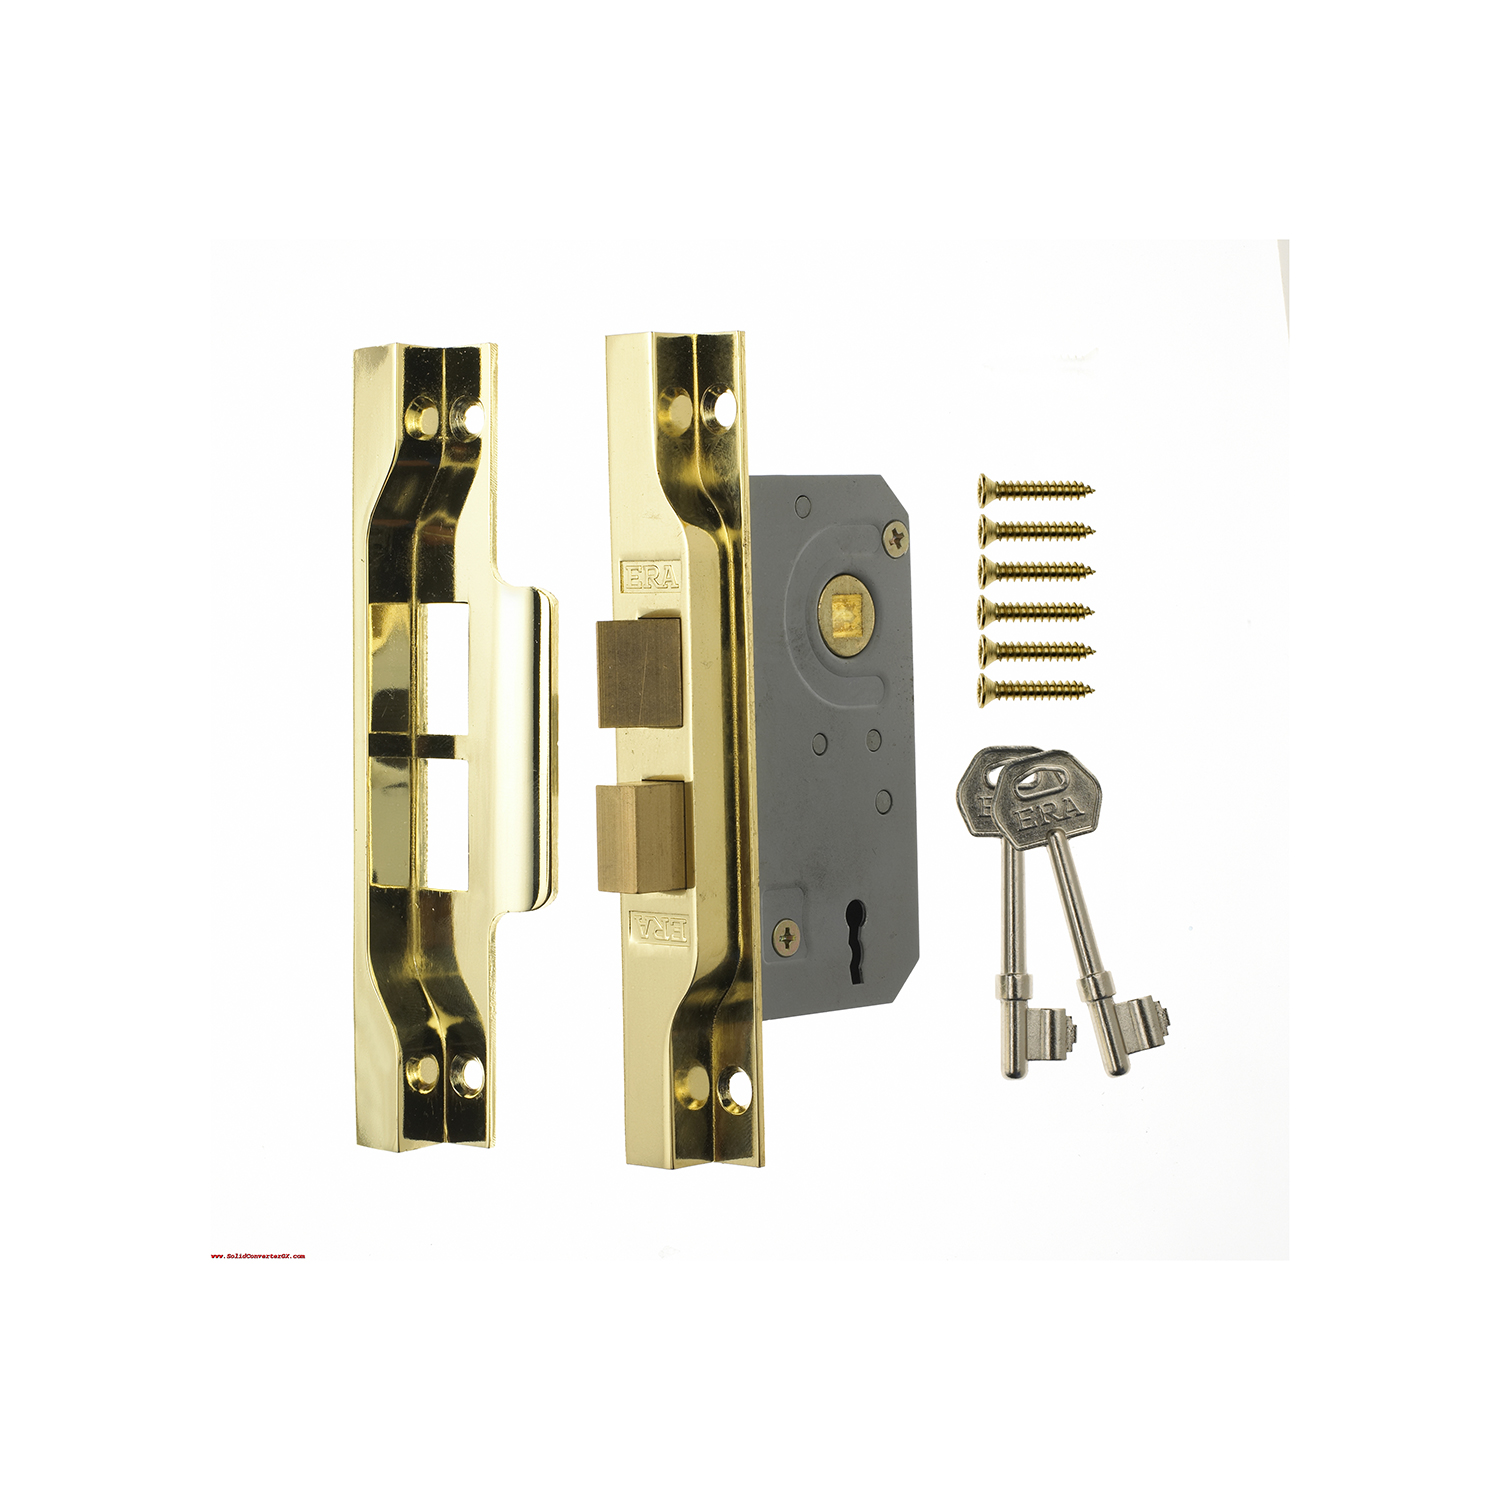 Rebated Door Lock